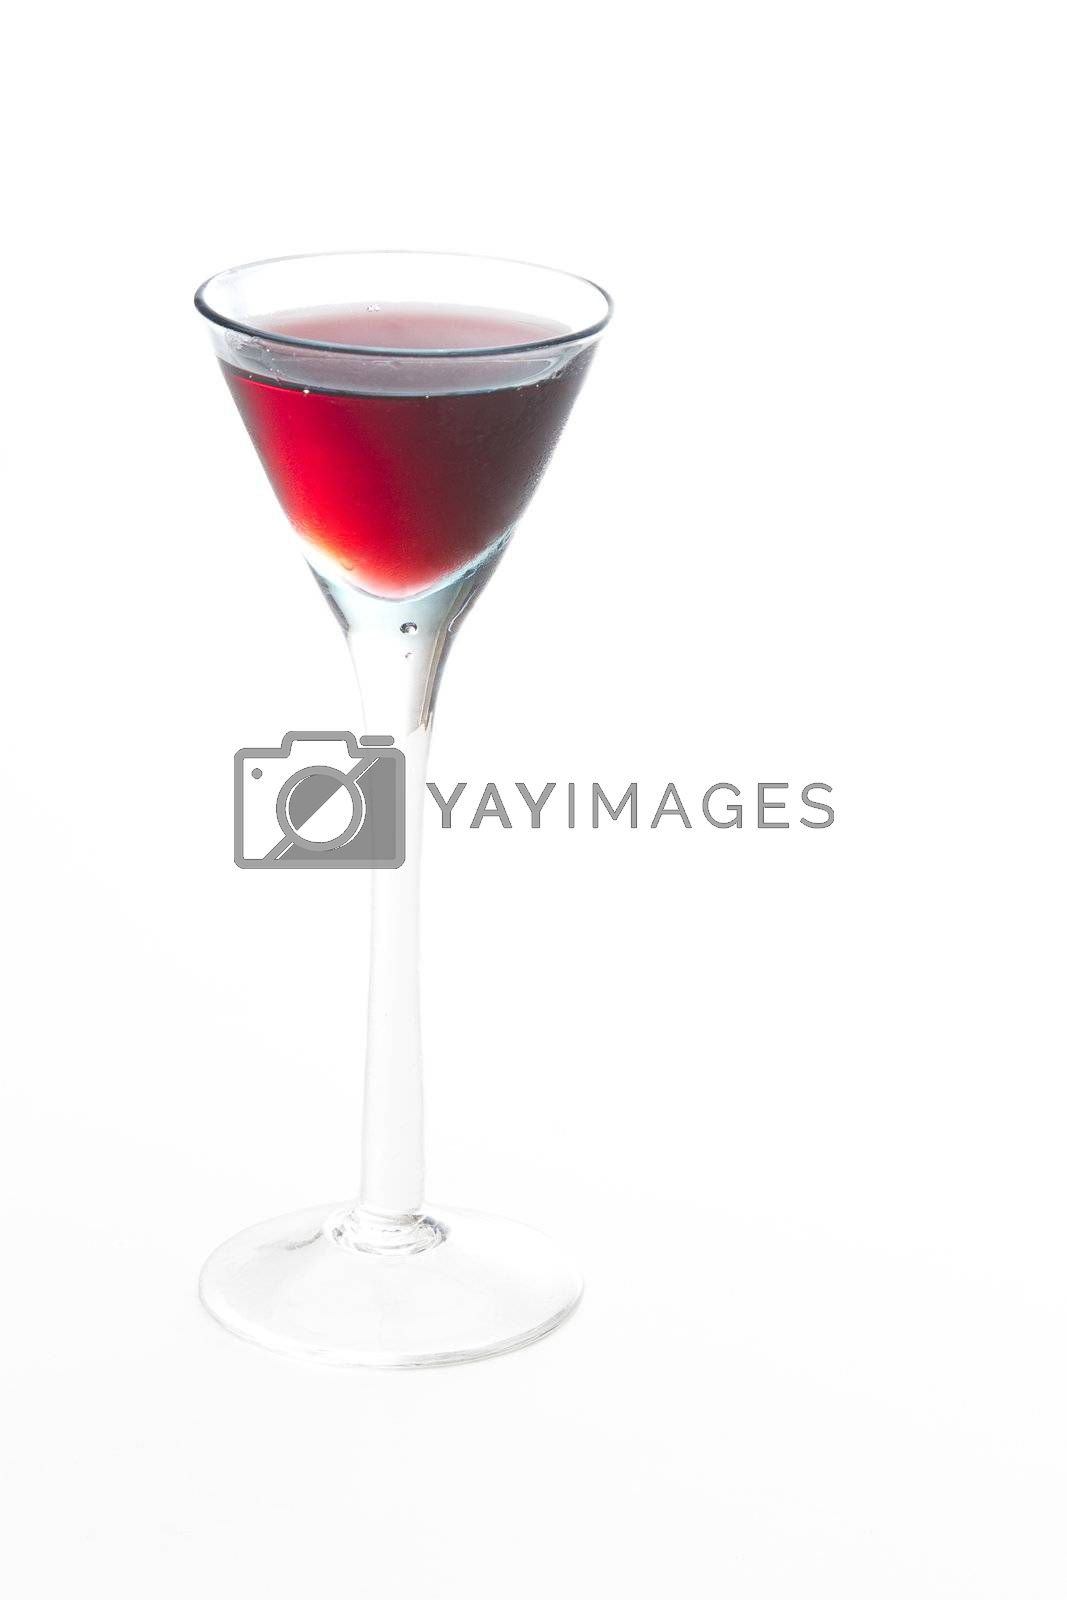 Royalty free image of Red wine by mypstudio